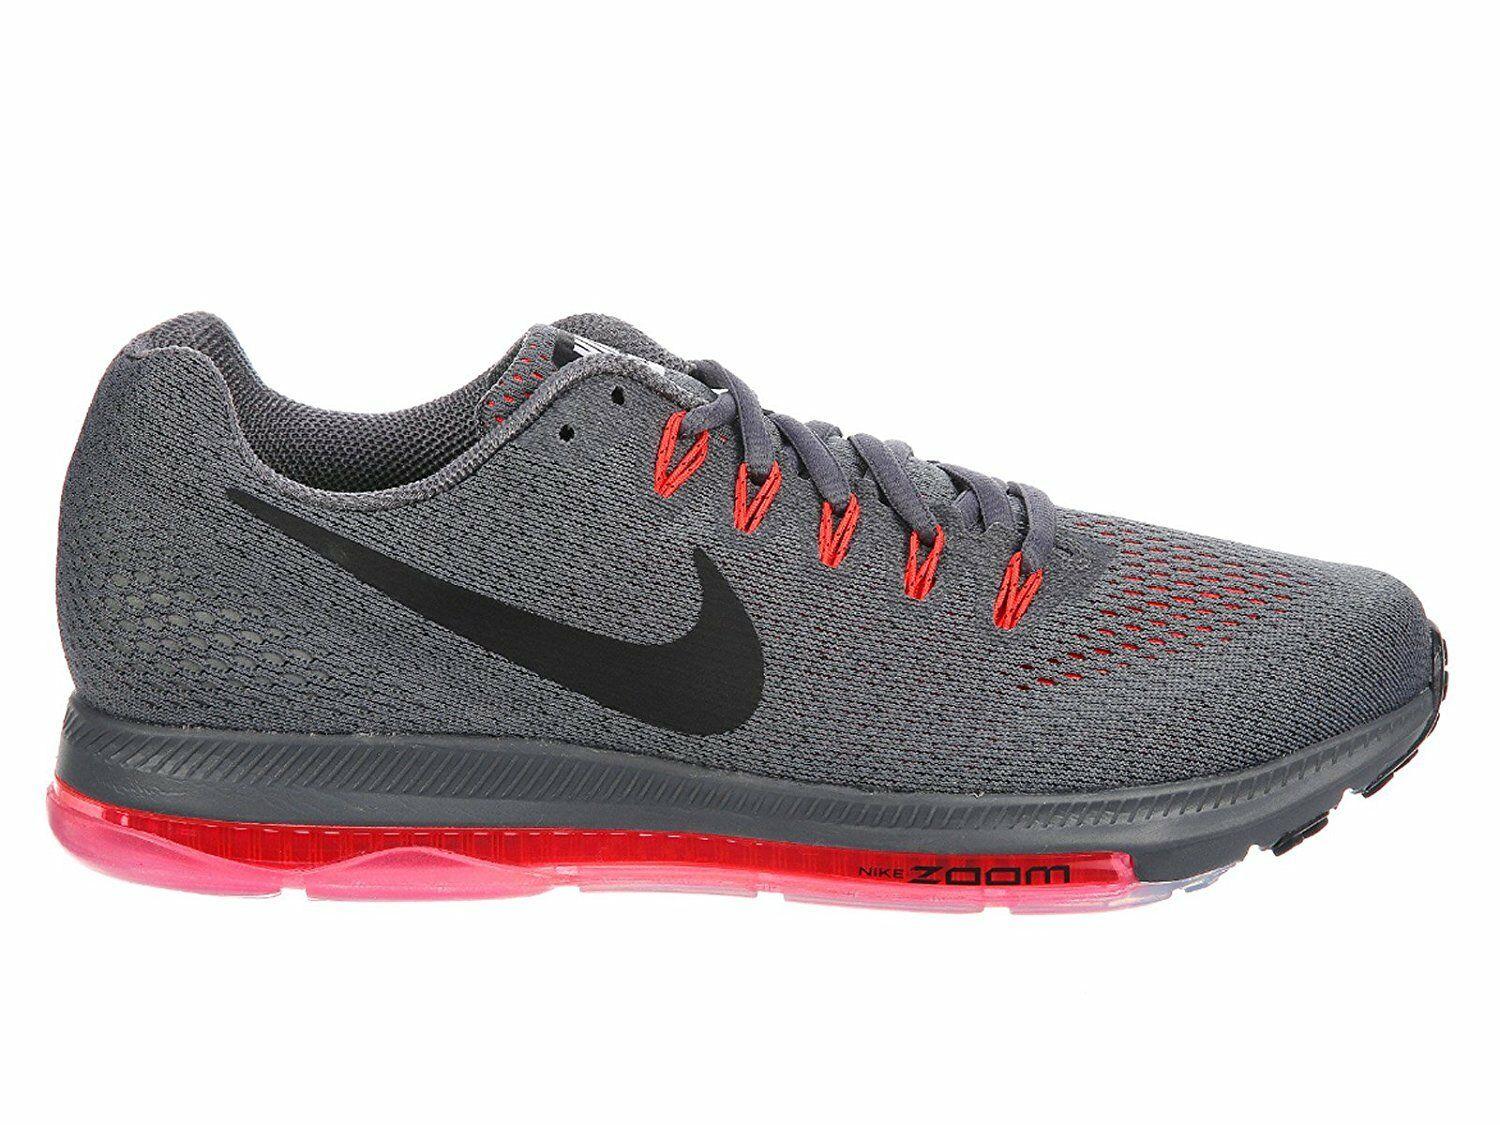 Men's Nike Zoom All Out Low Running shoes, 878670 006 Mult Sizes Dark Grey Black